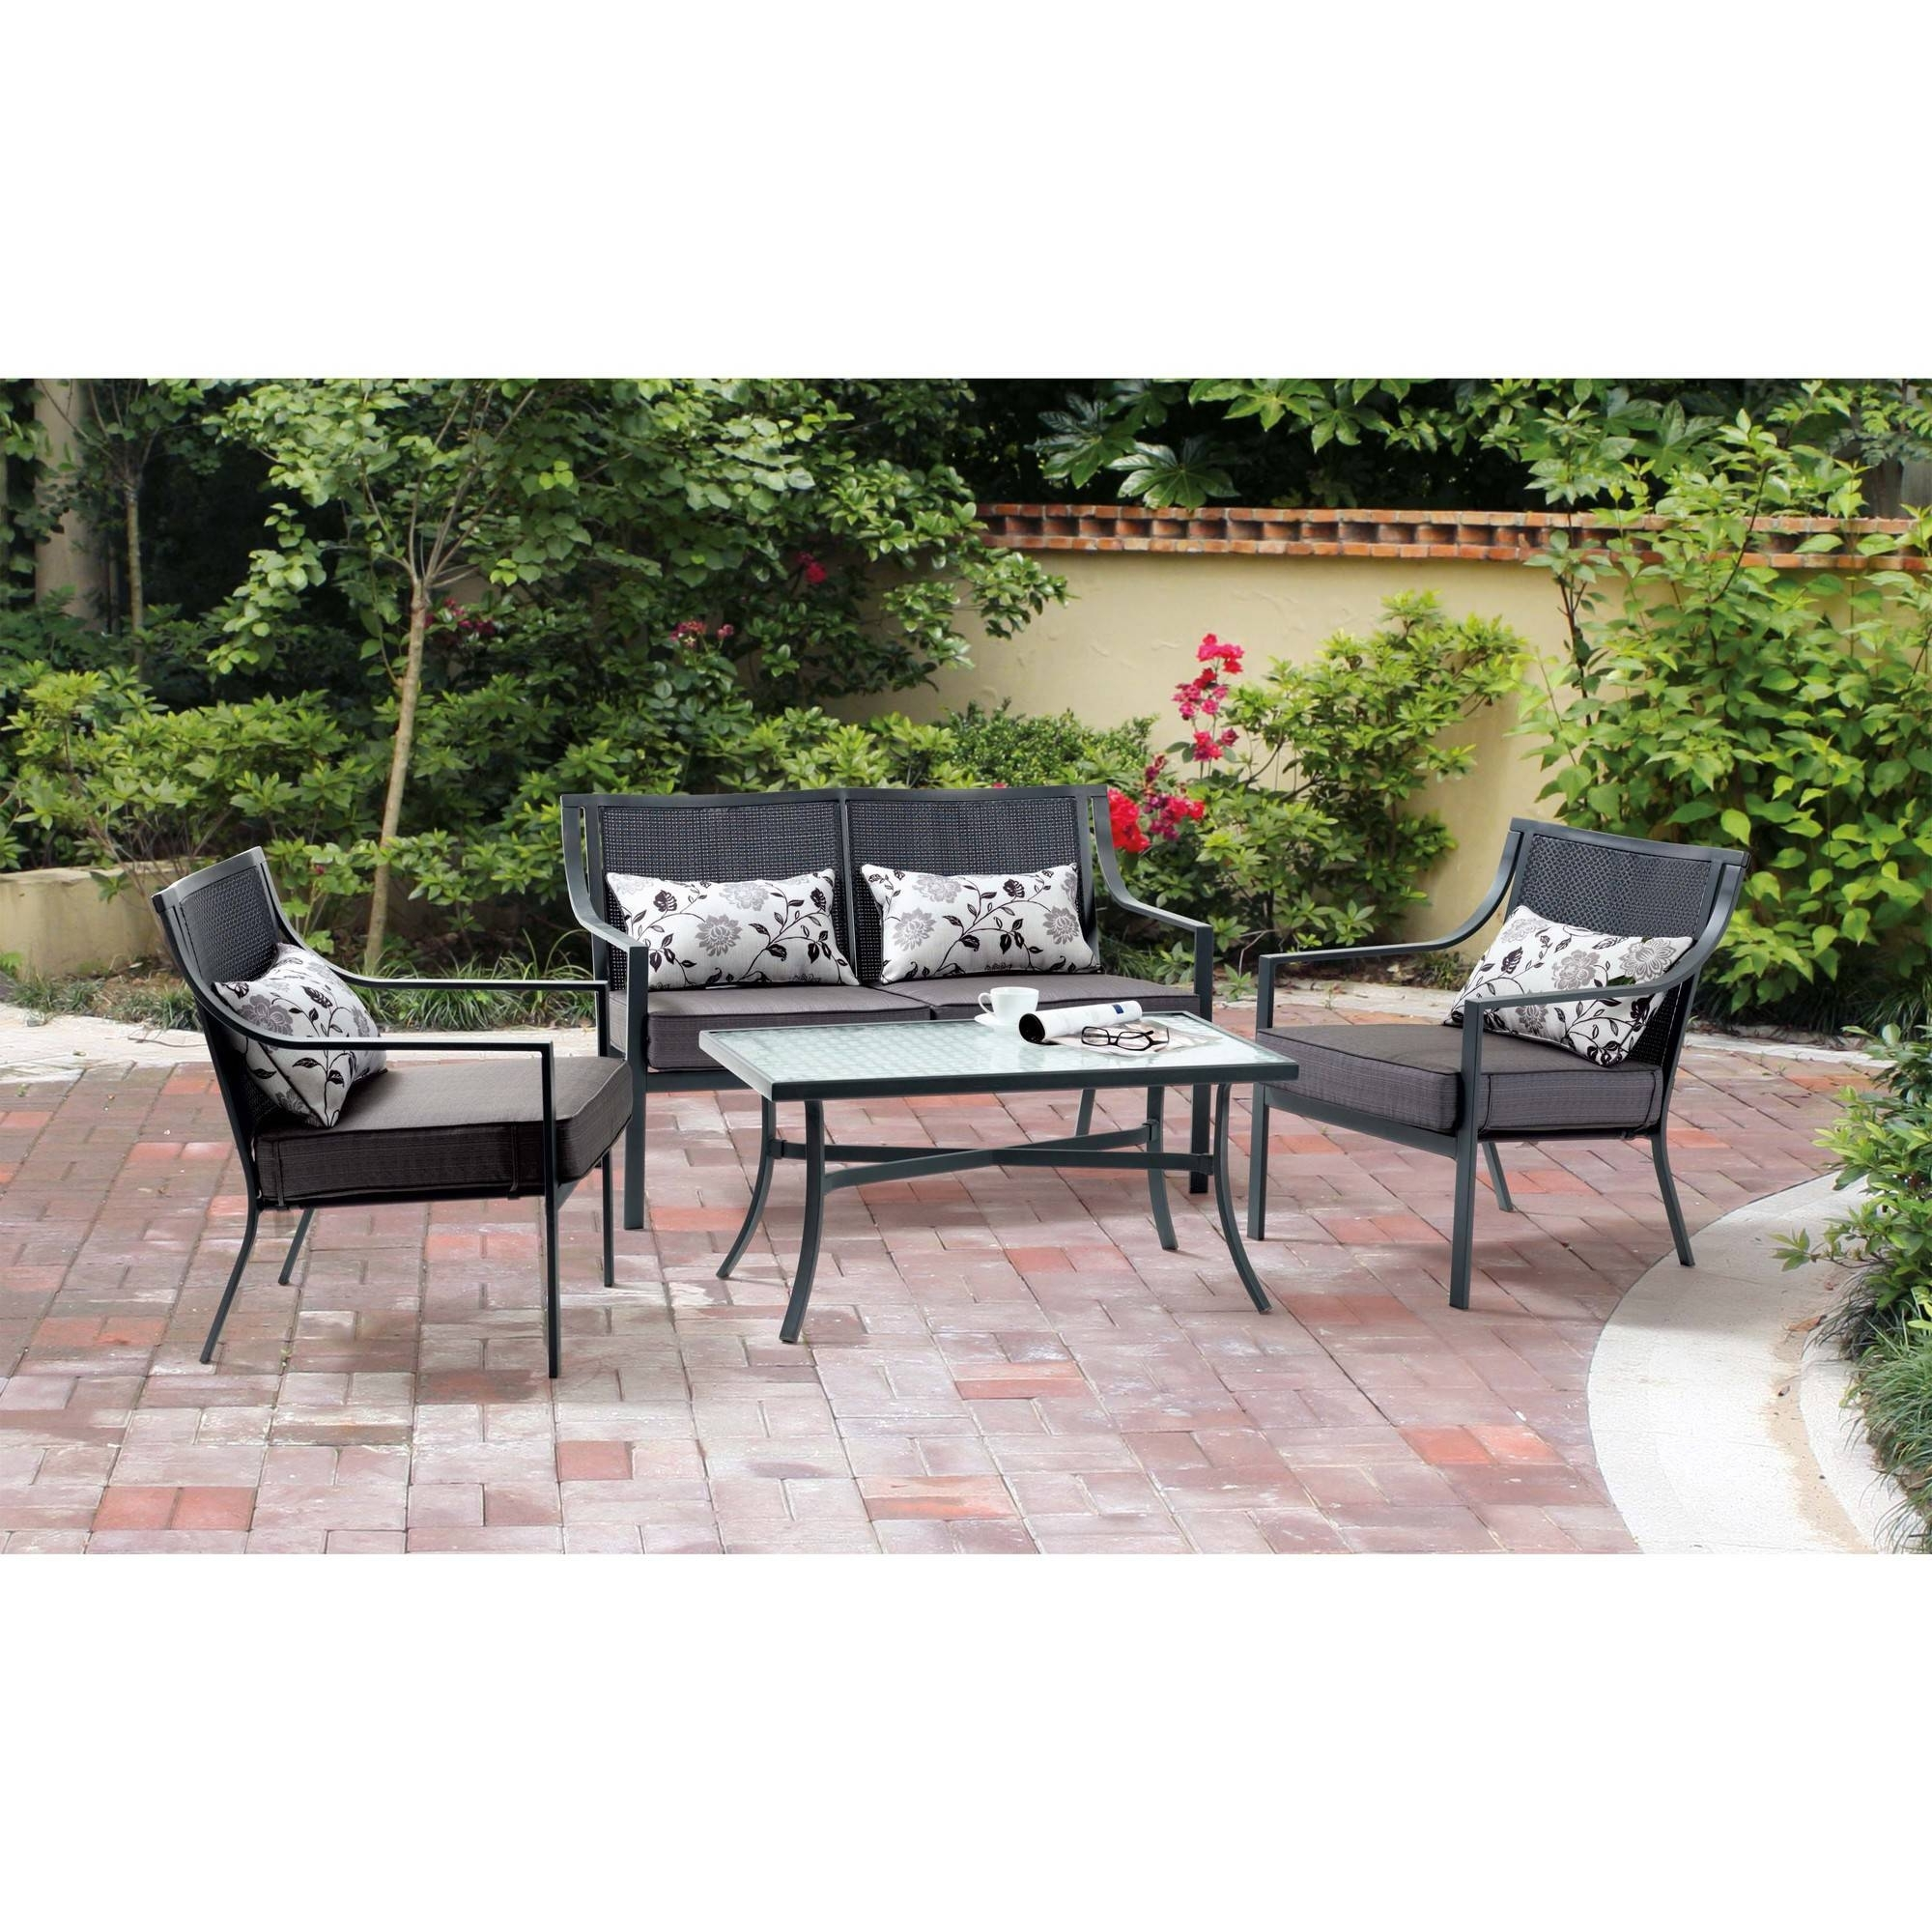 Trendy Patio Conversation Sets Without Cushions Within Patio Conversation Sets Without Cushions – Patio Ideas (View 14 of 15)